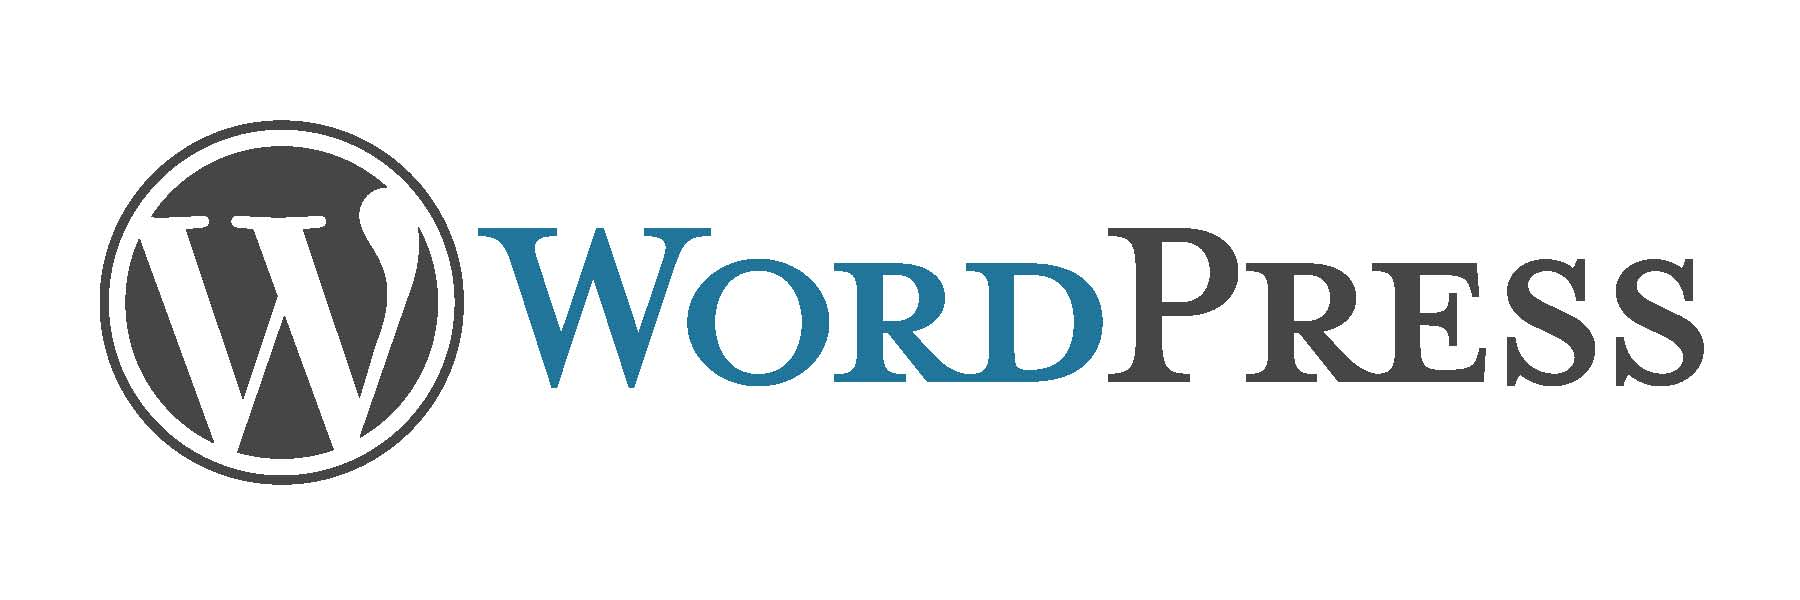 WordPress-blogi